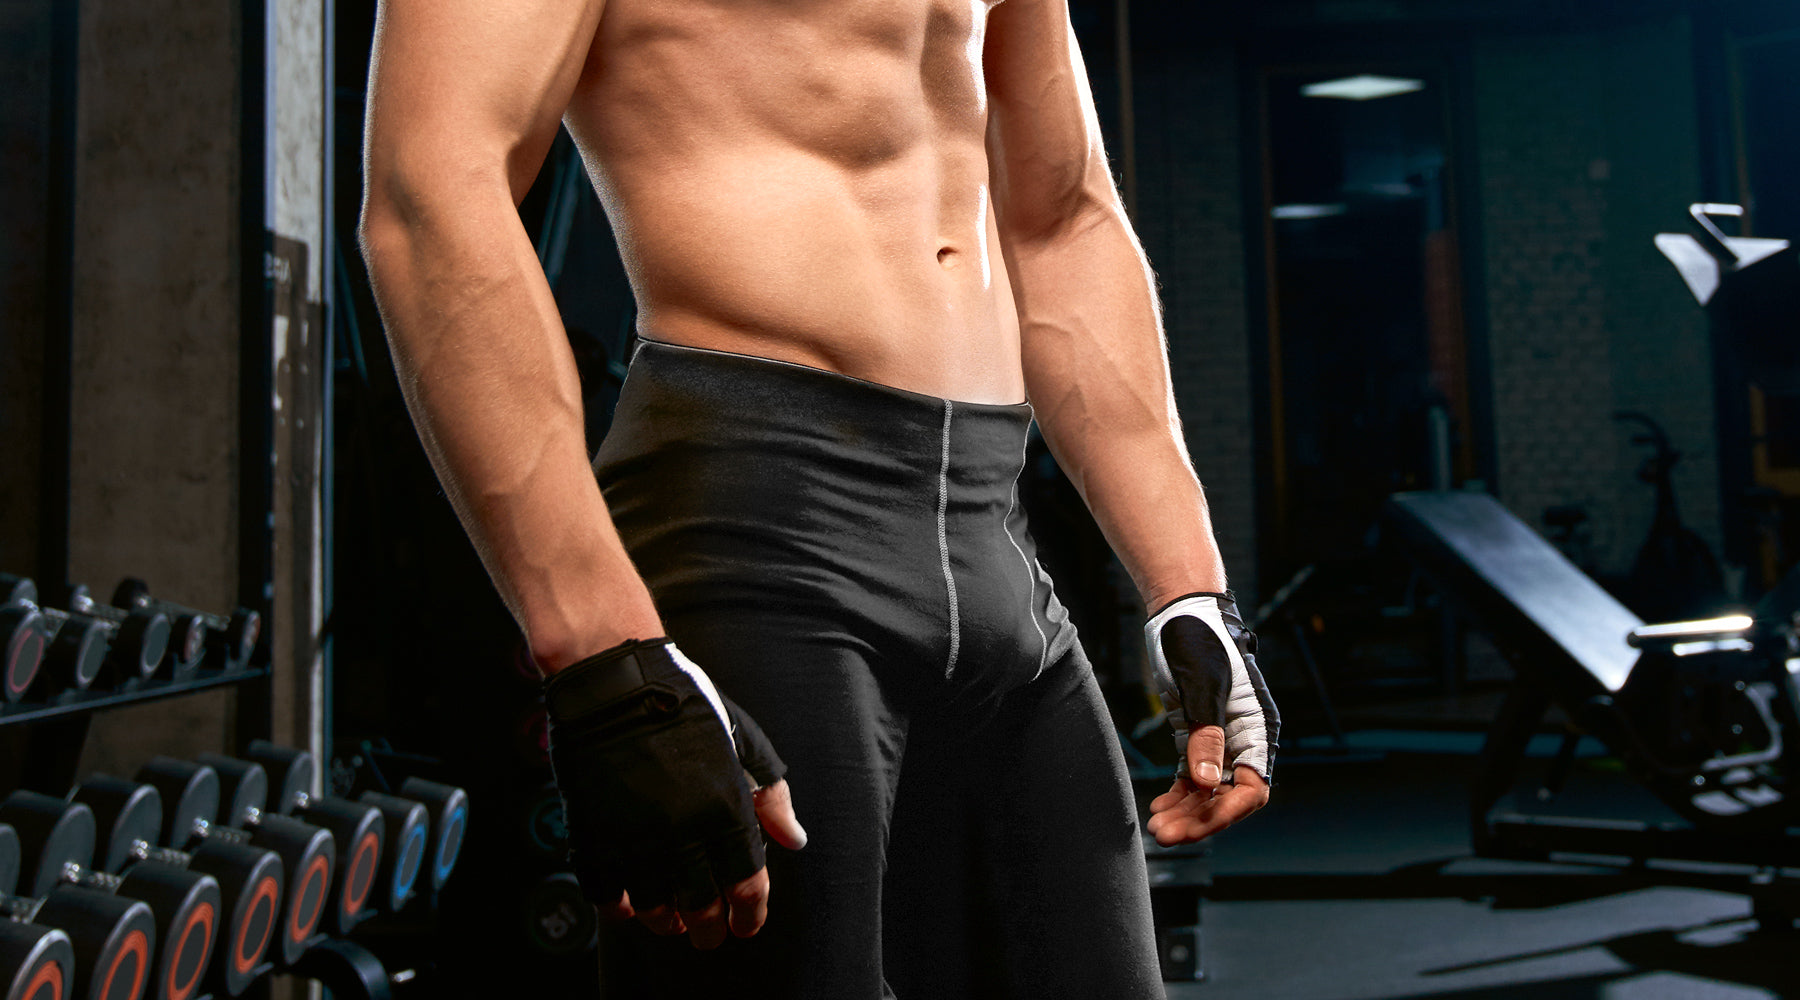 Man's bare midsection with black tights that has a lot of pelvic muscle strength